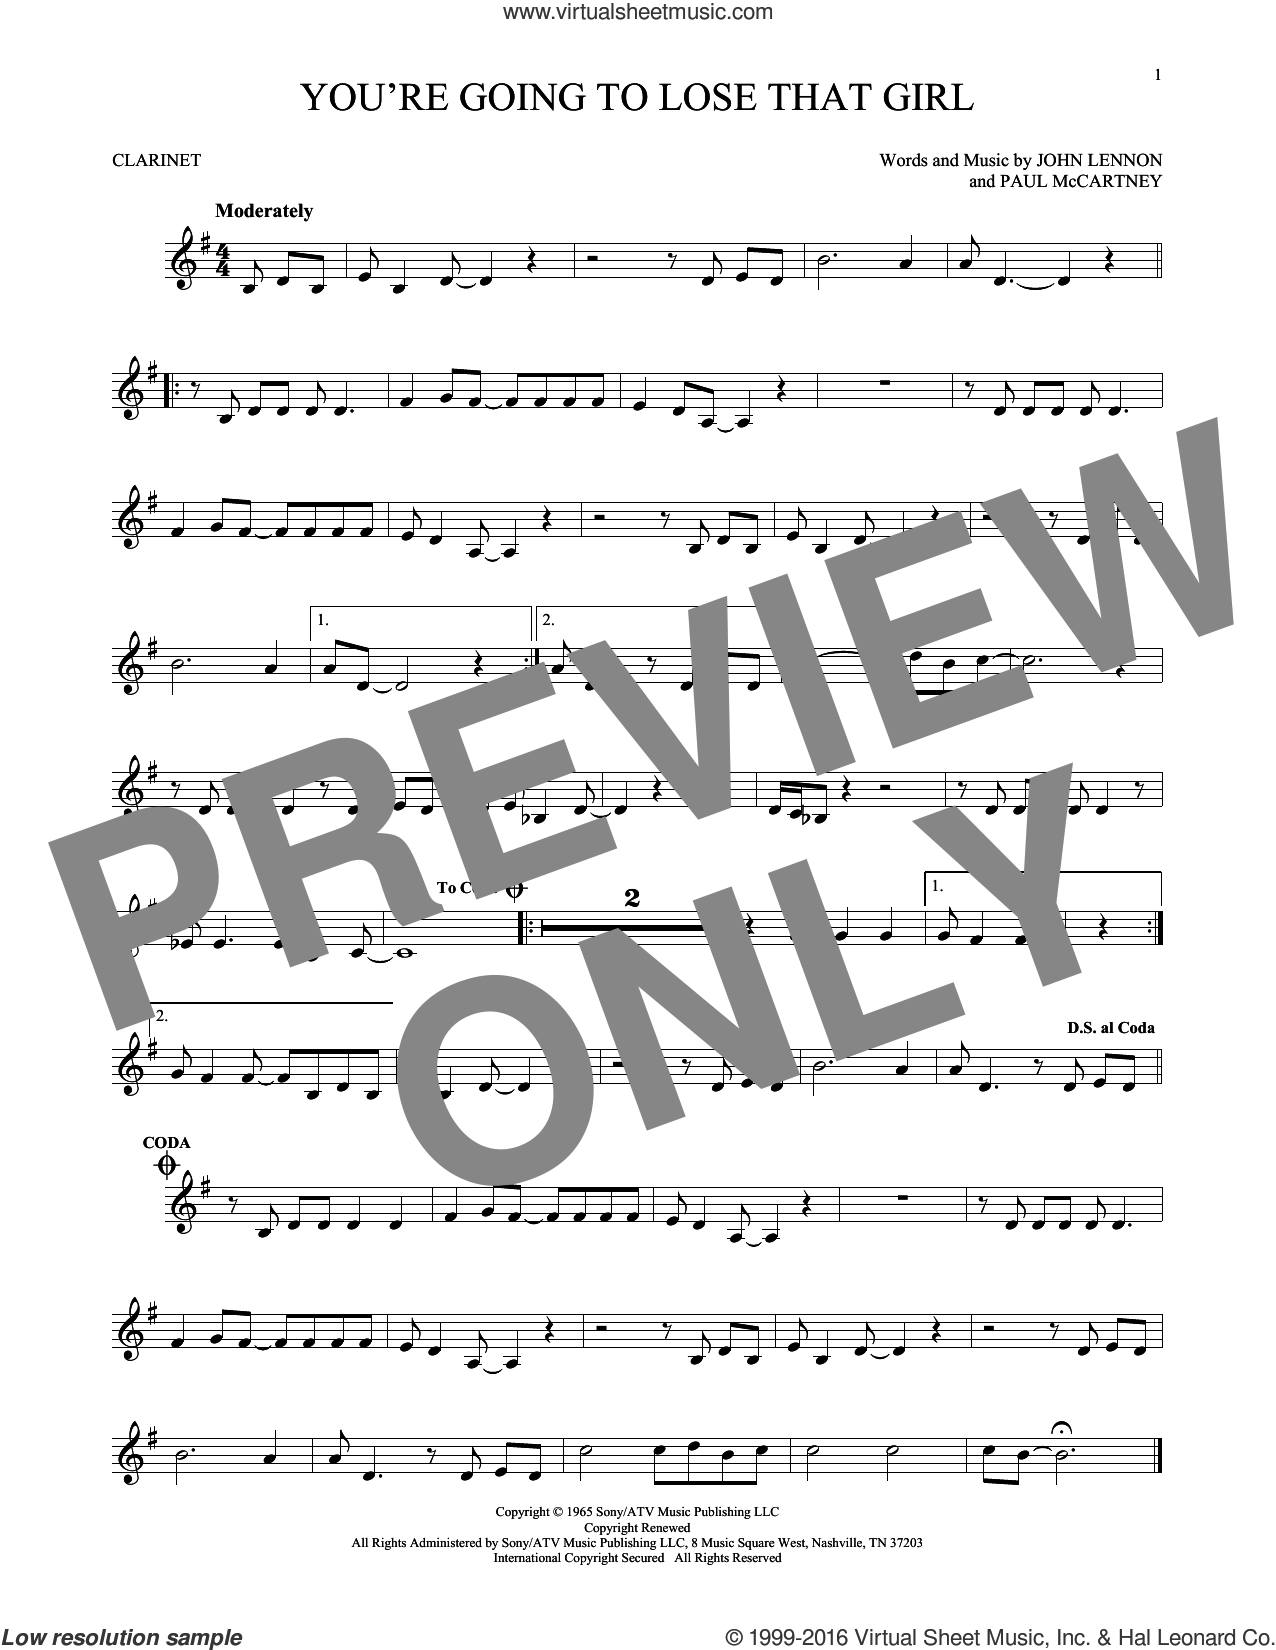 You're Going To Lose That Girl sheet music for clarinet solo by Paul McCartney, The Beatles and John Lennon. Score Image Preview.